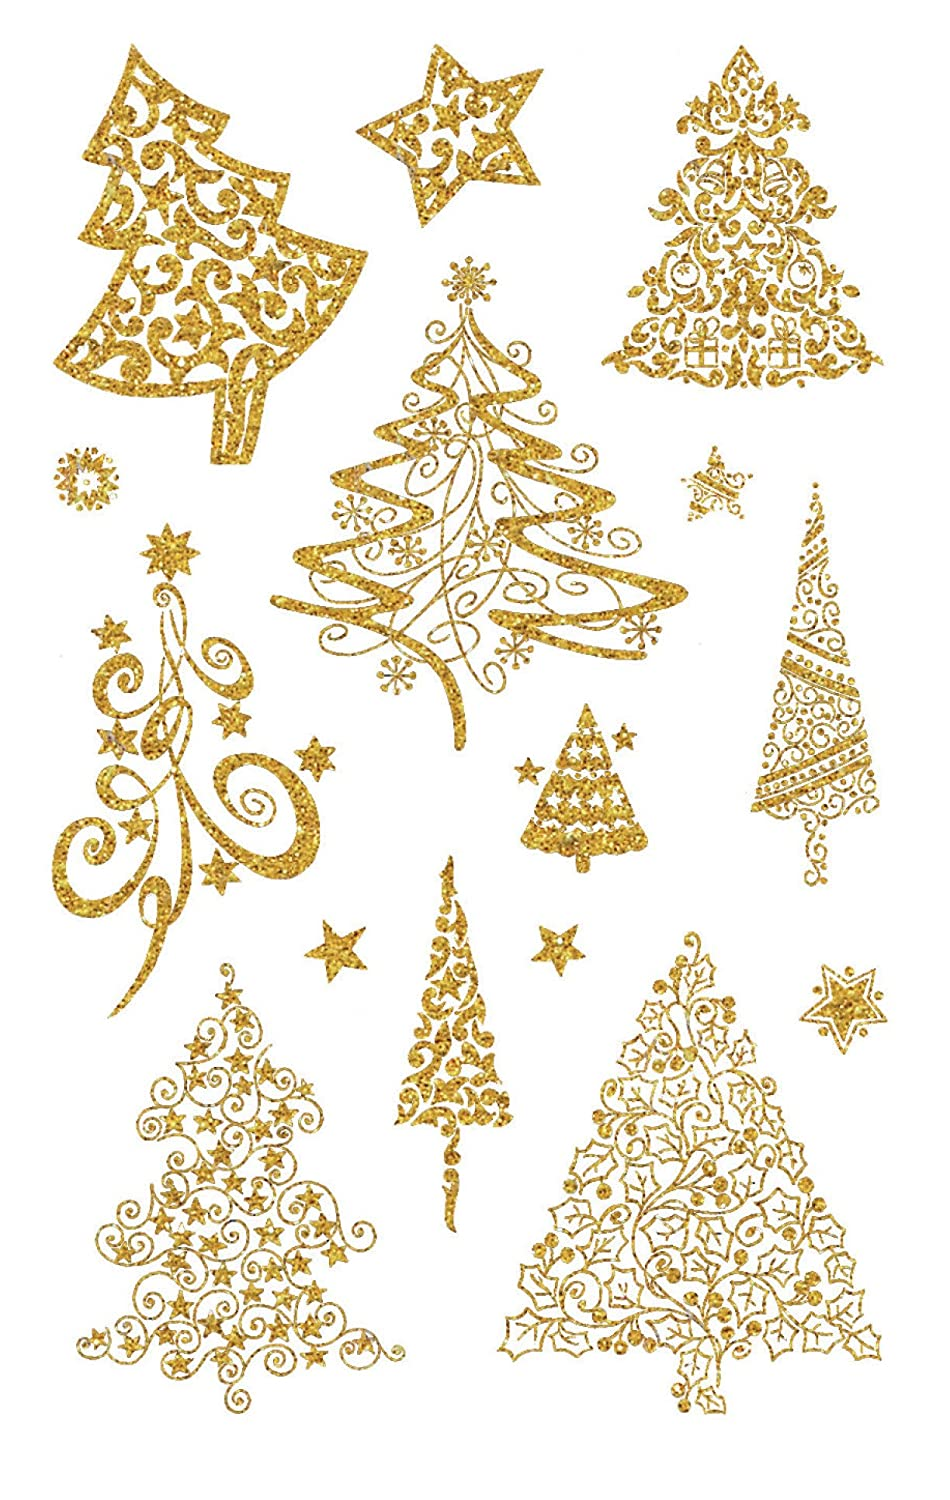 Avery 52273 Christmas Stickers, 30 Stickers, Christmas Trees Avery Zweckform SC-MS-52273